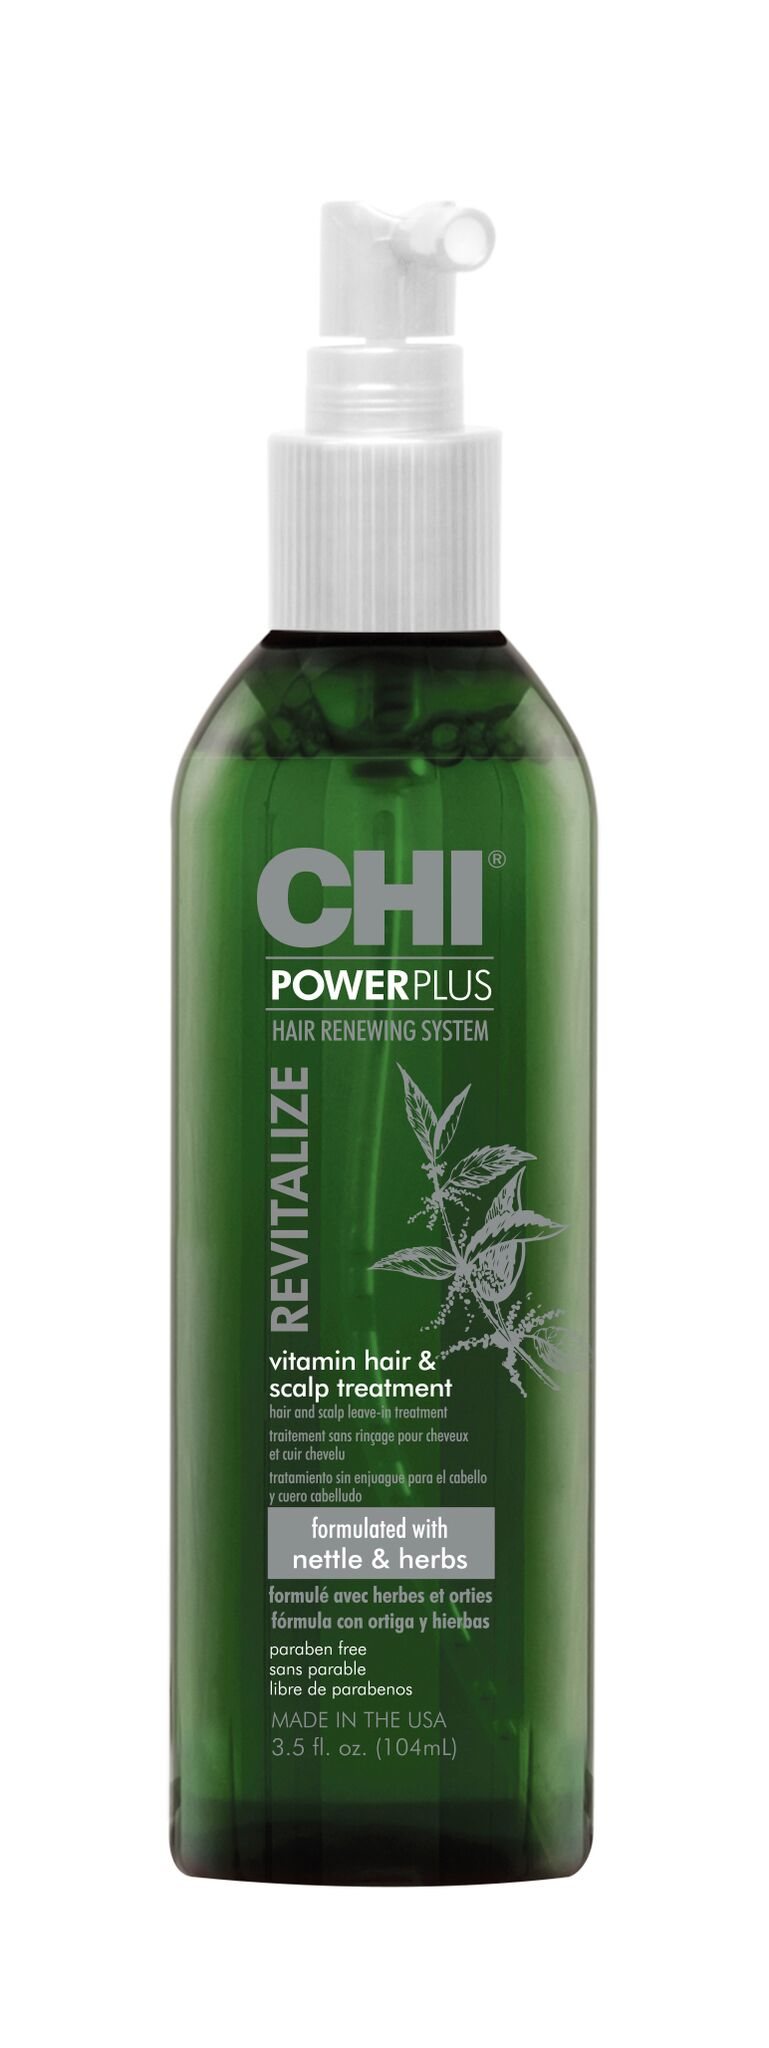 CHI Power Plus Line Vitamin Hair Scalp Treatment 3oz preview - CHI POWER PLUS